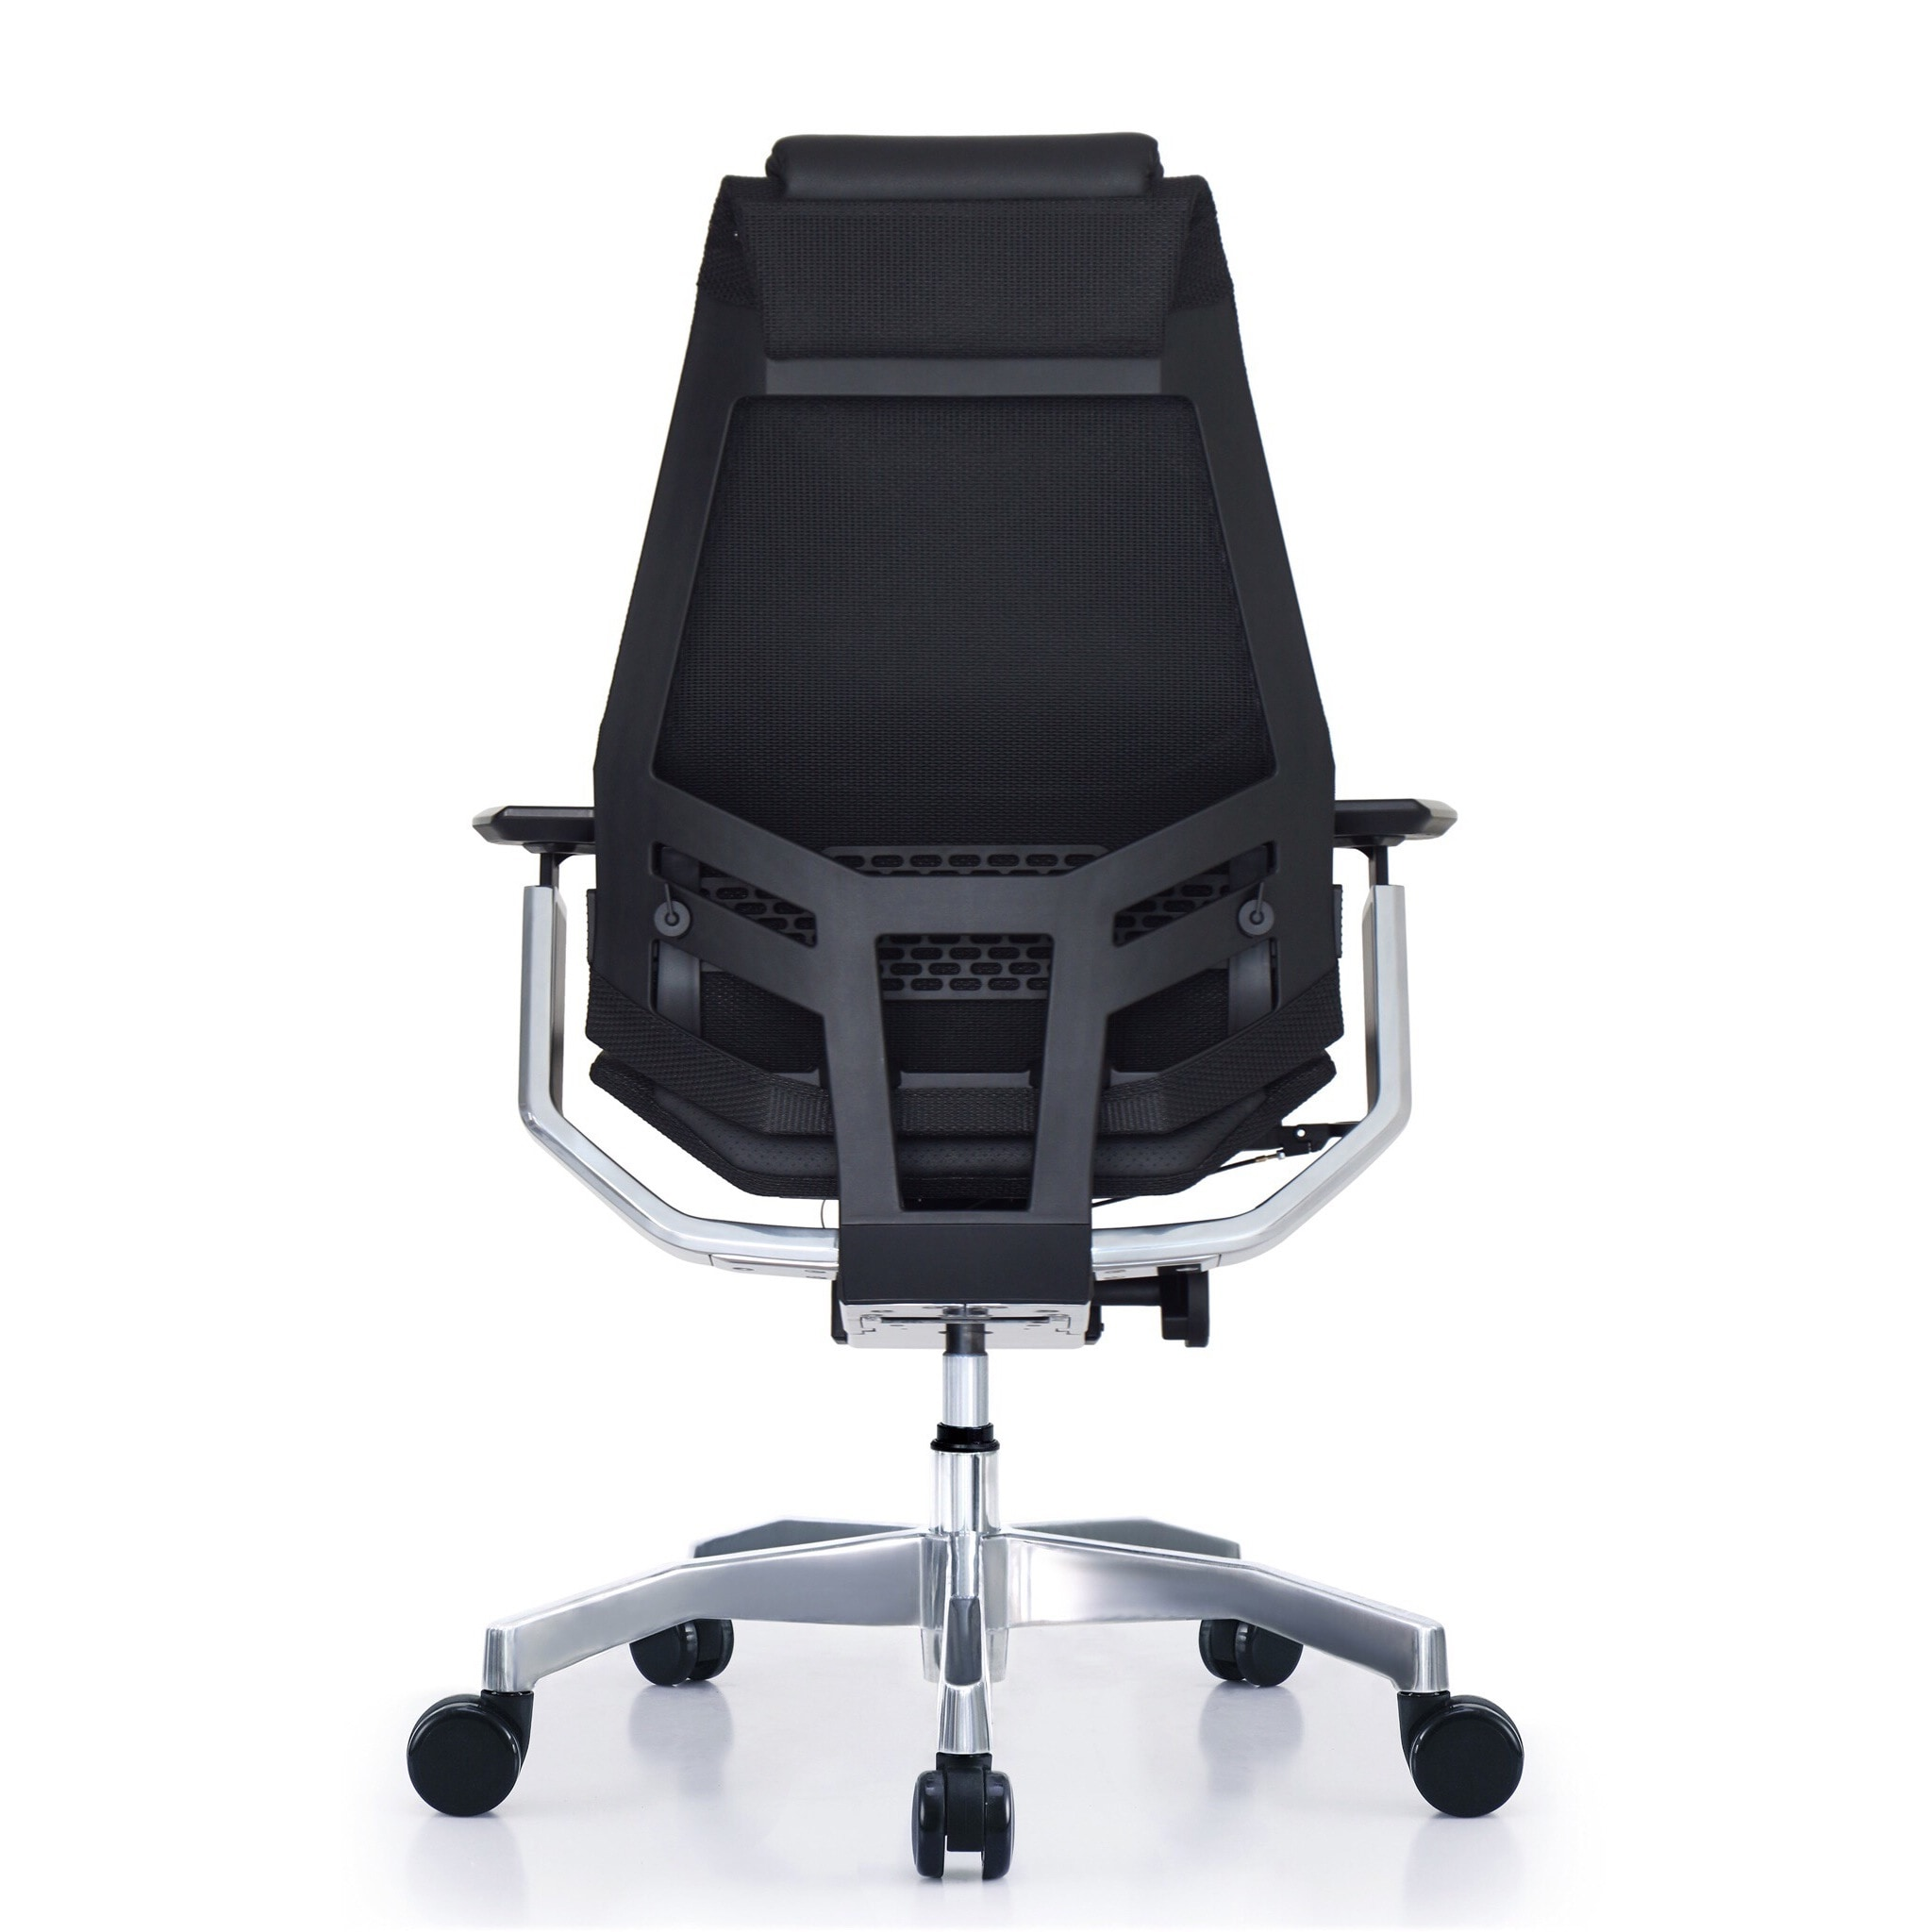 office chair genuine leather white. GM Seating Bodylux Black Genuine Leather Smart Seat Swivel Exectutive Chair With Chrome Base And Headrest - Free Shipping Today Overstock 19185753 Office White W